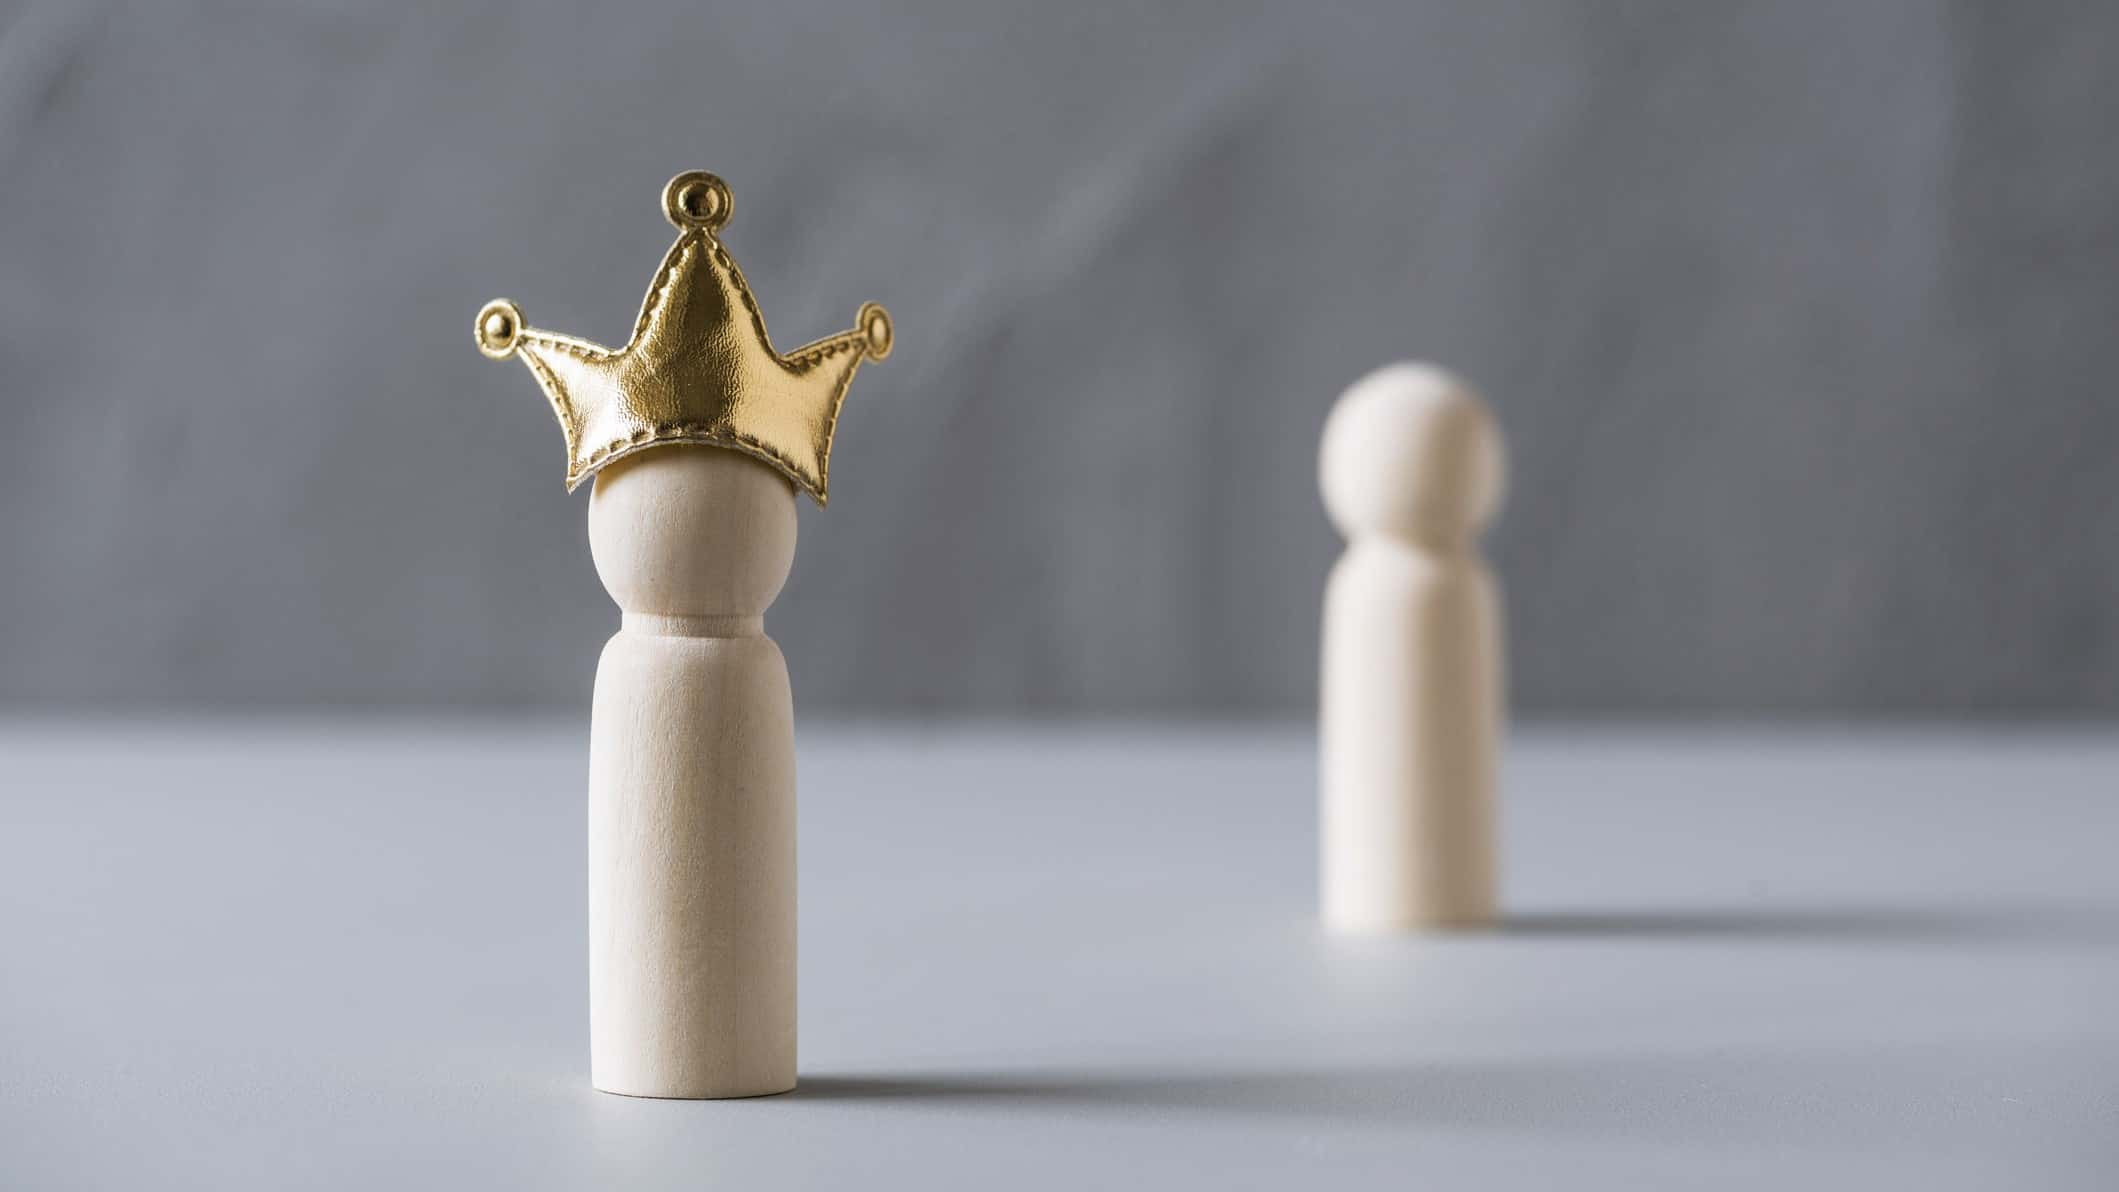 asx shares management represented by wooden peg doll wearing gold crown